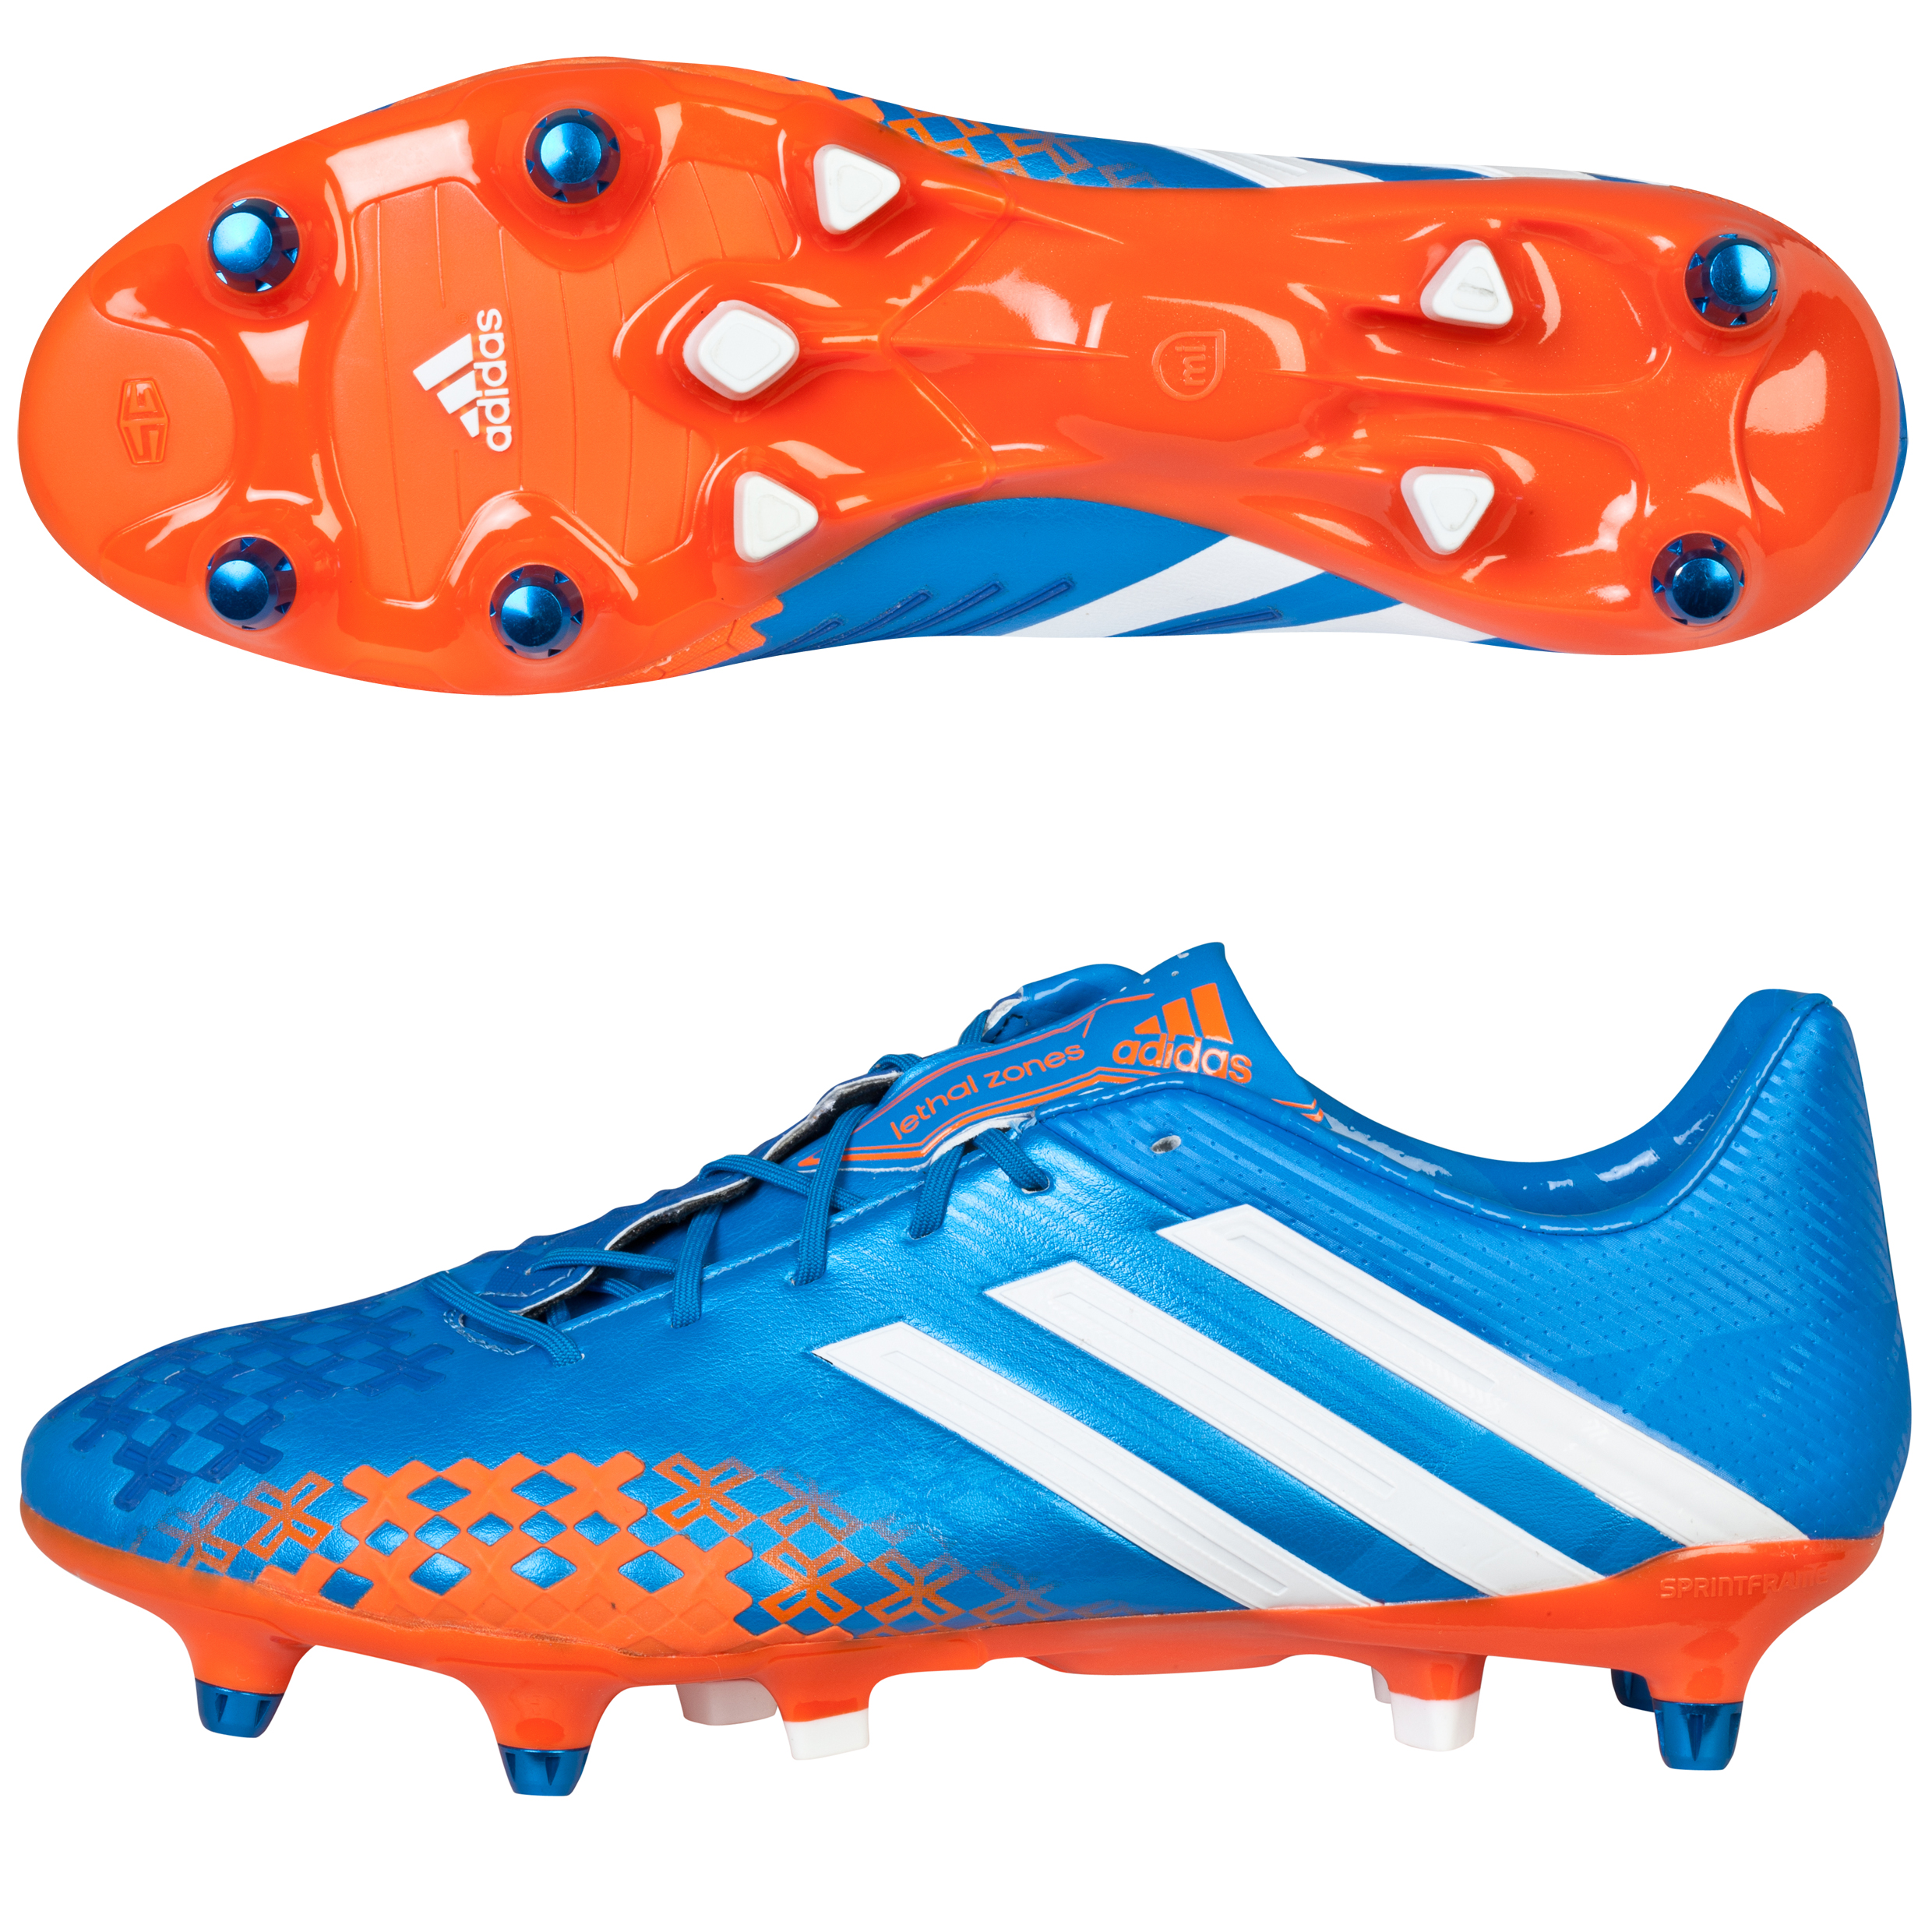 Adidas Predator LZ XTRX Soft Ground Football Boots Blue